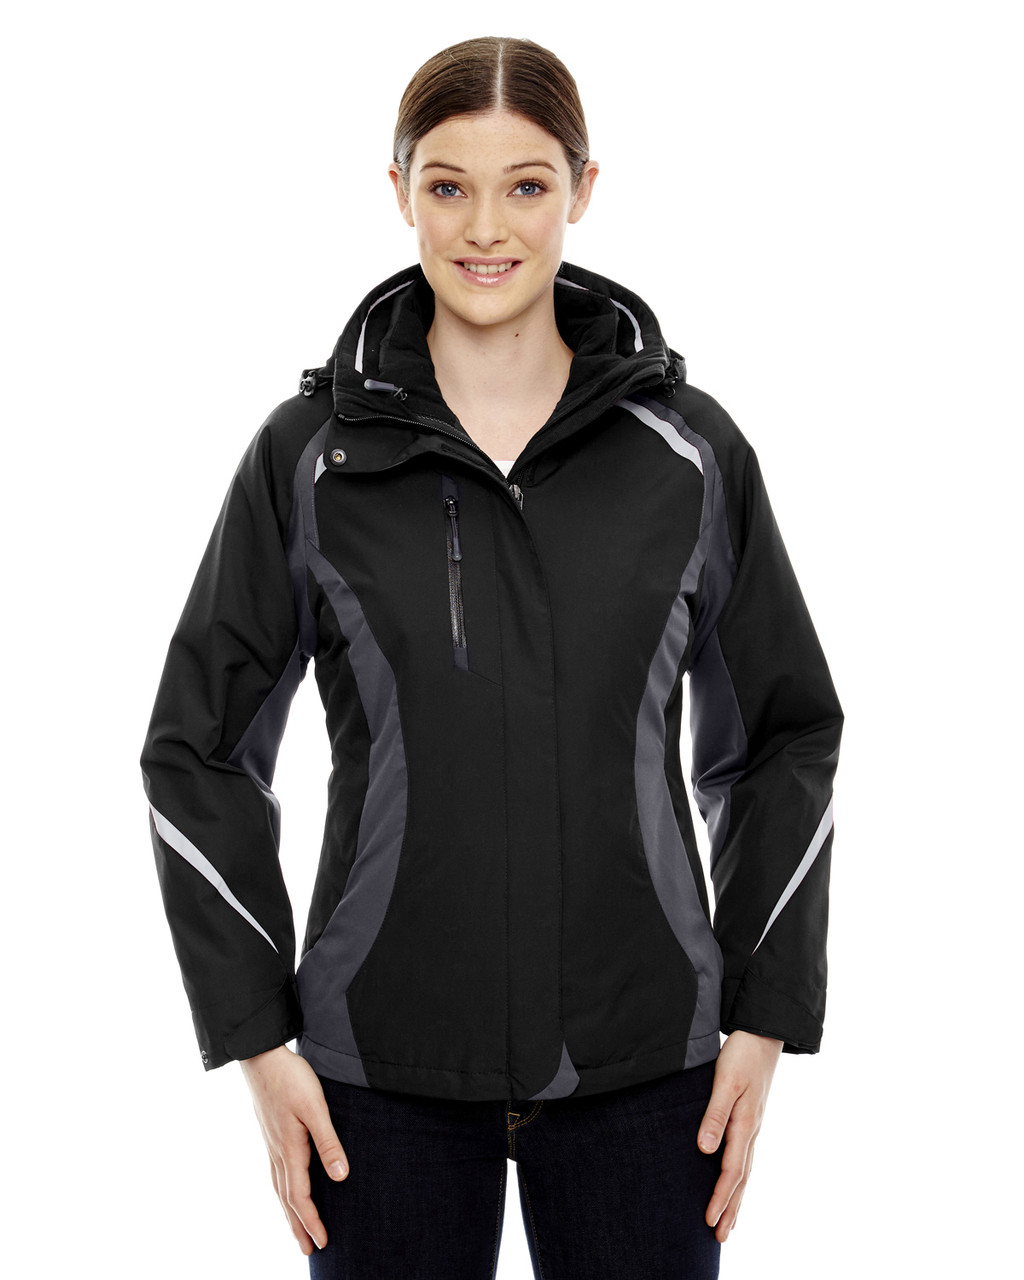 Black - 78195 Ash City - North End Ladies' Height 3-in-1 Jacket with Insulated Liner | Blankclothing.ca